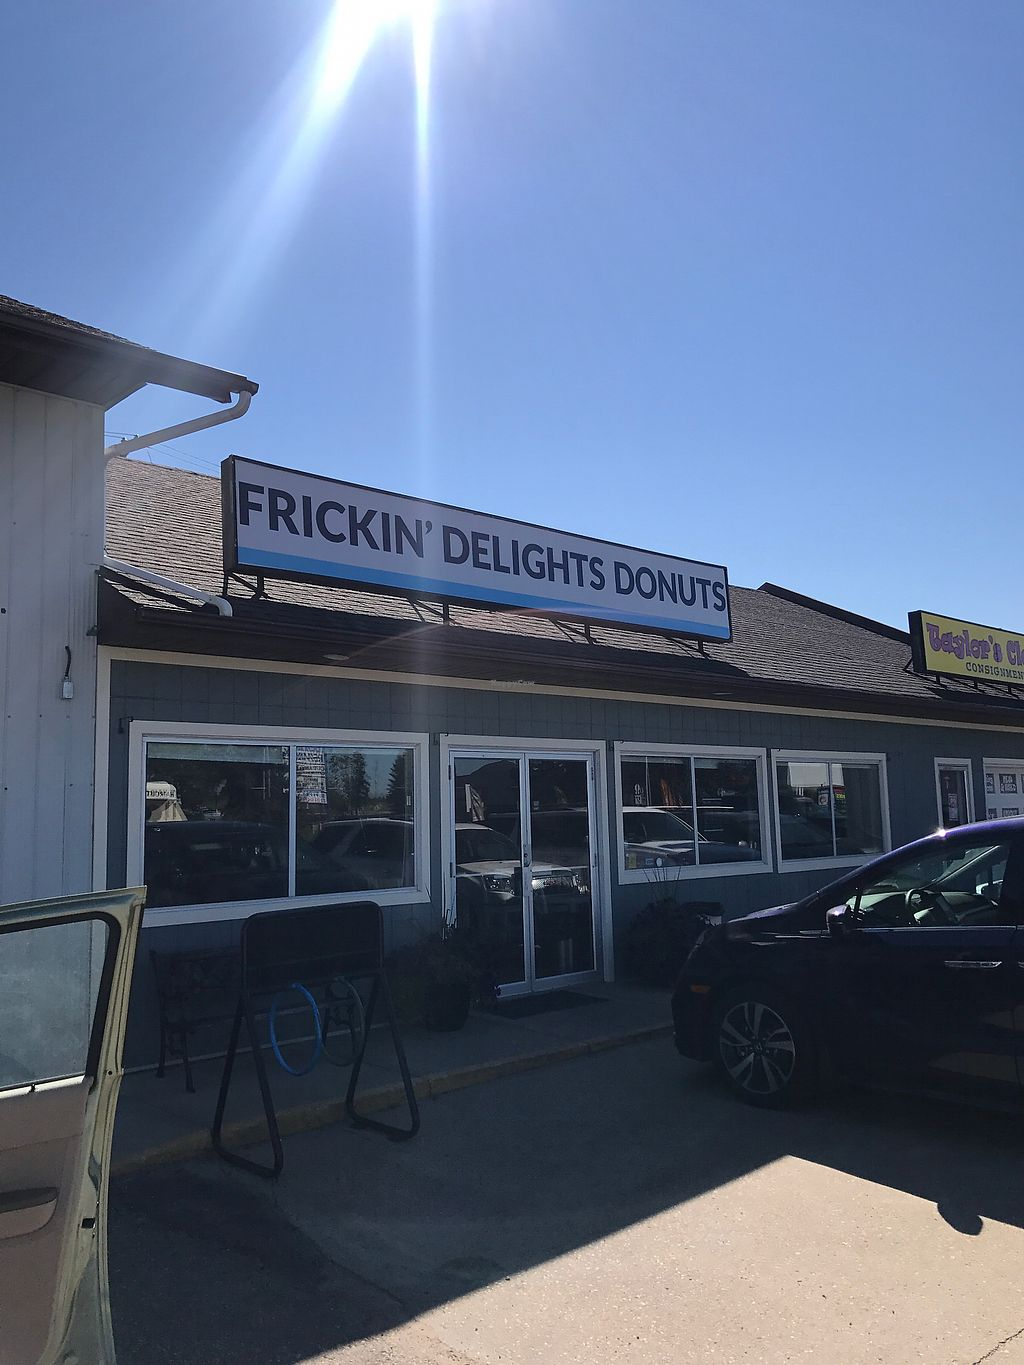 """Photo of Frickin' Delights Donuts  by <a href=""""/members/profile/vegetariangirl"""">vegetariangirl</a> <br/>front of building  <br/> August 11, 2017  - <a href='/contact/abuse/image/96440/291636'>Report</a>"""